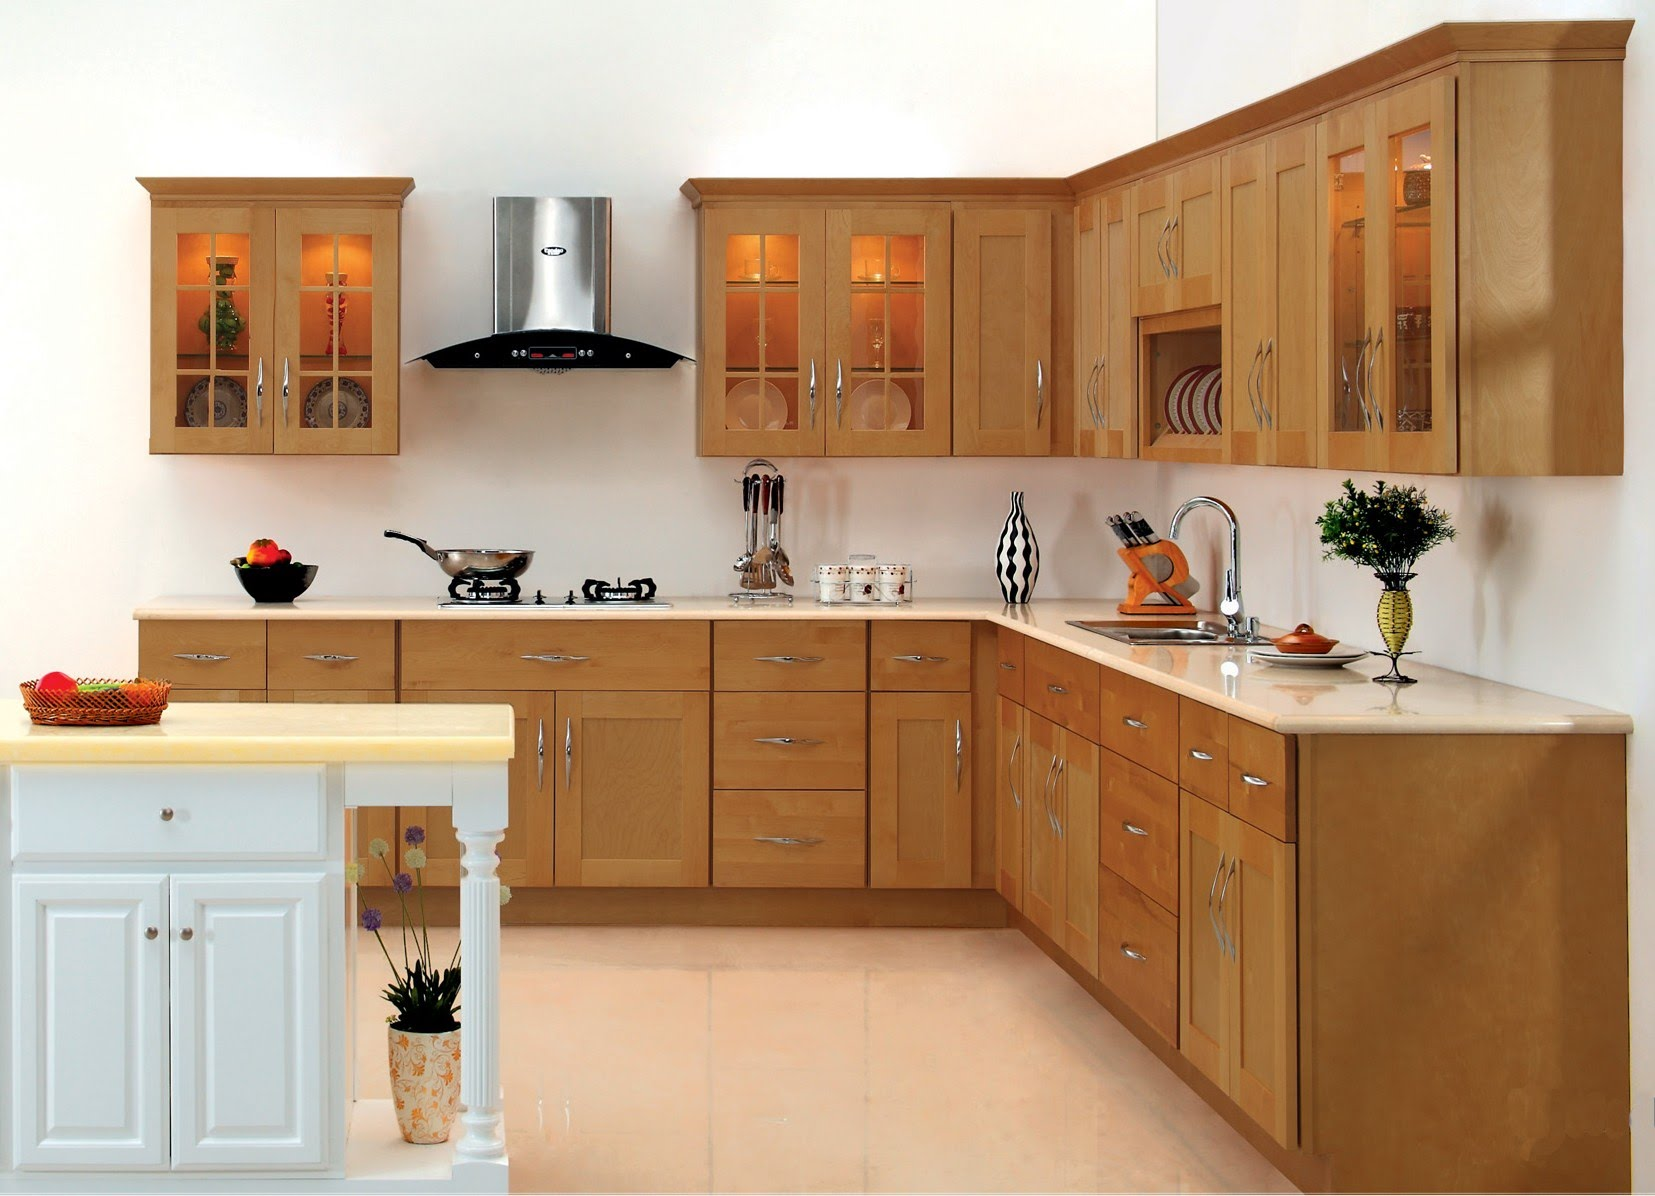 How To Improve Kitchen Cabinet Designs For Higher